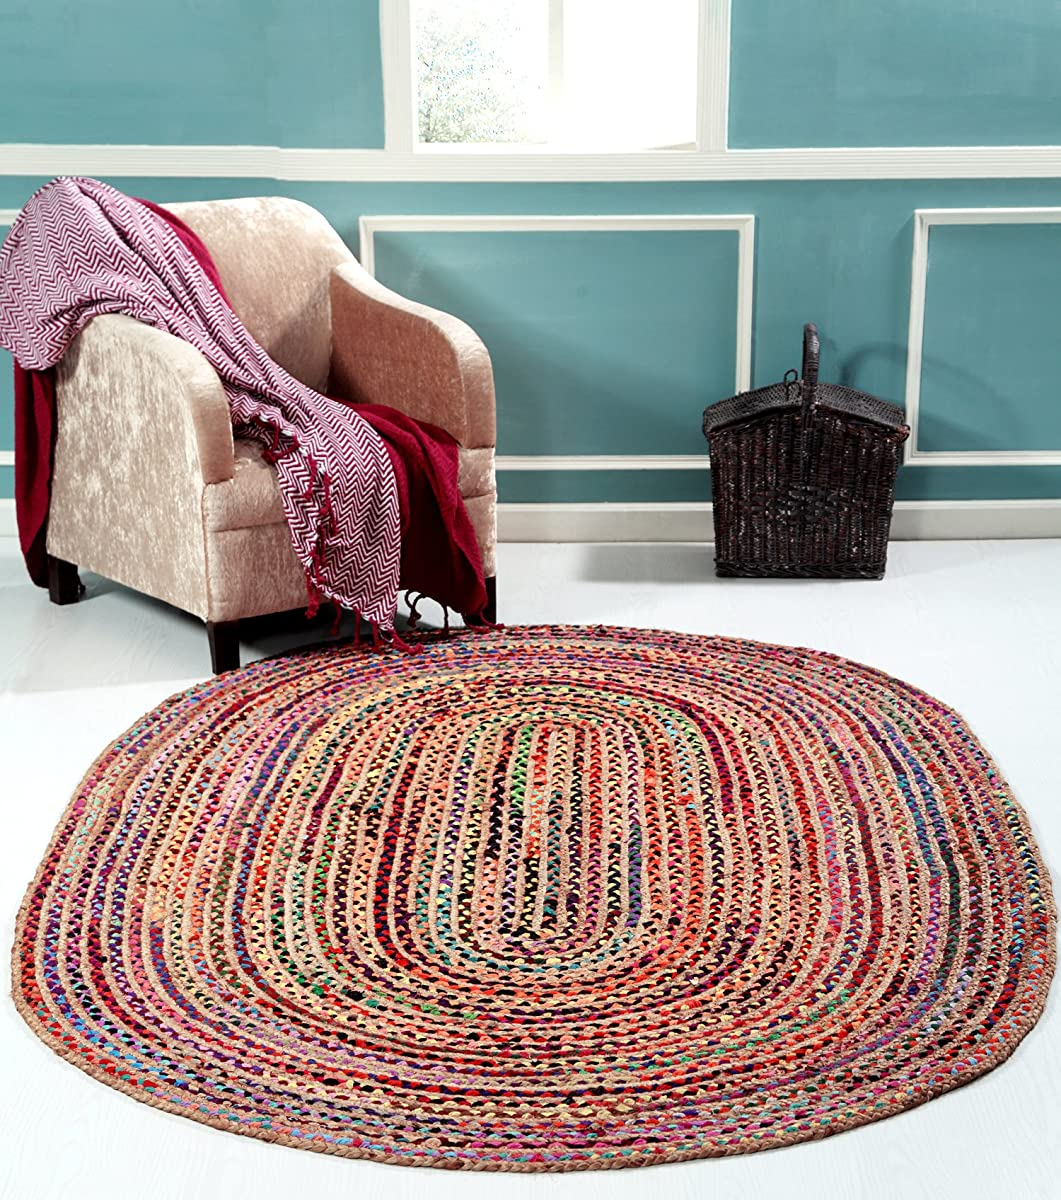 Hand Made - Braided Multicolor Chindi Rugs - Natural Jute & Cotton Rugs - 5 x 8 Oval Area Rugs - Boho Bohemian Area Rugs- Reversible Oval Area Rugs- Braided Chindi Cotton Jute Area Rugs By HILLFAIR